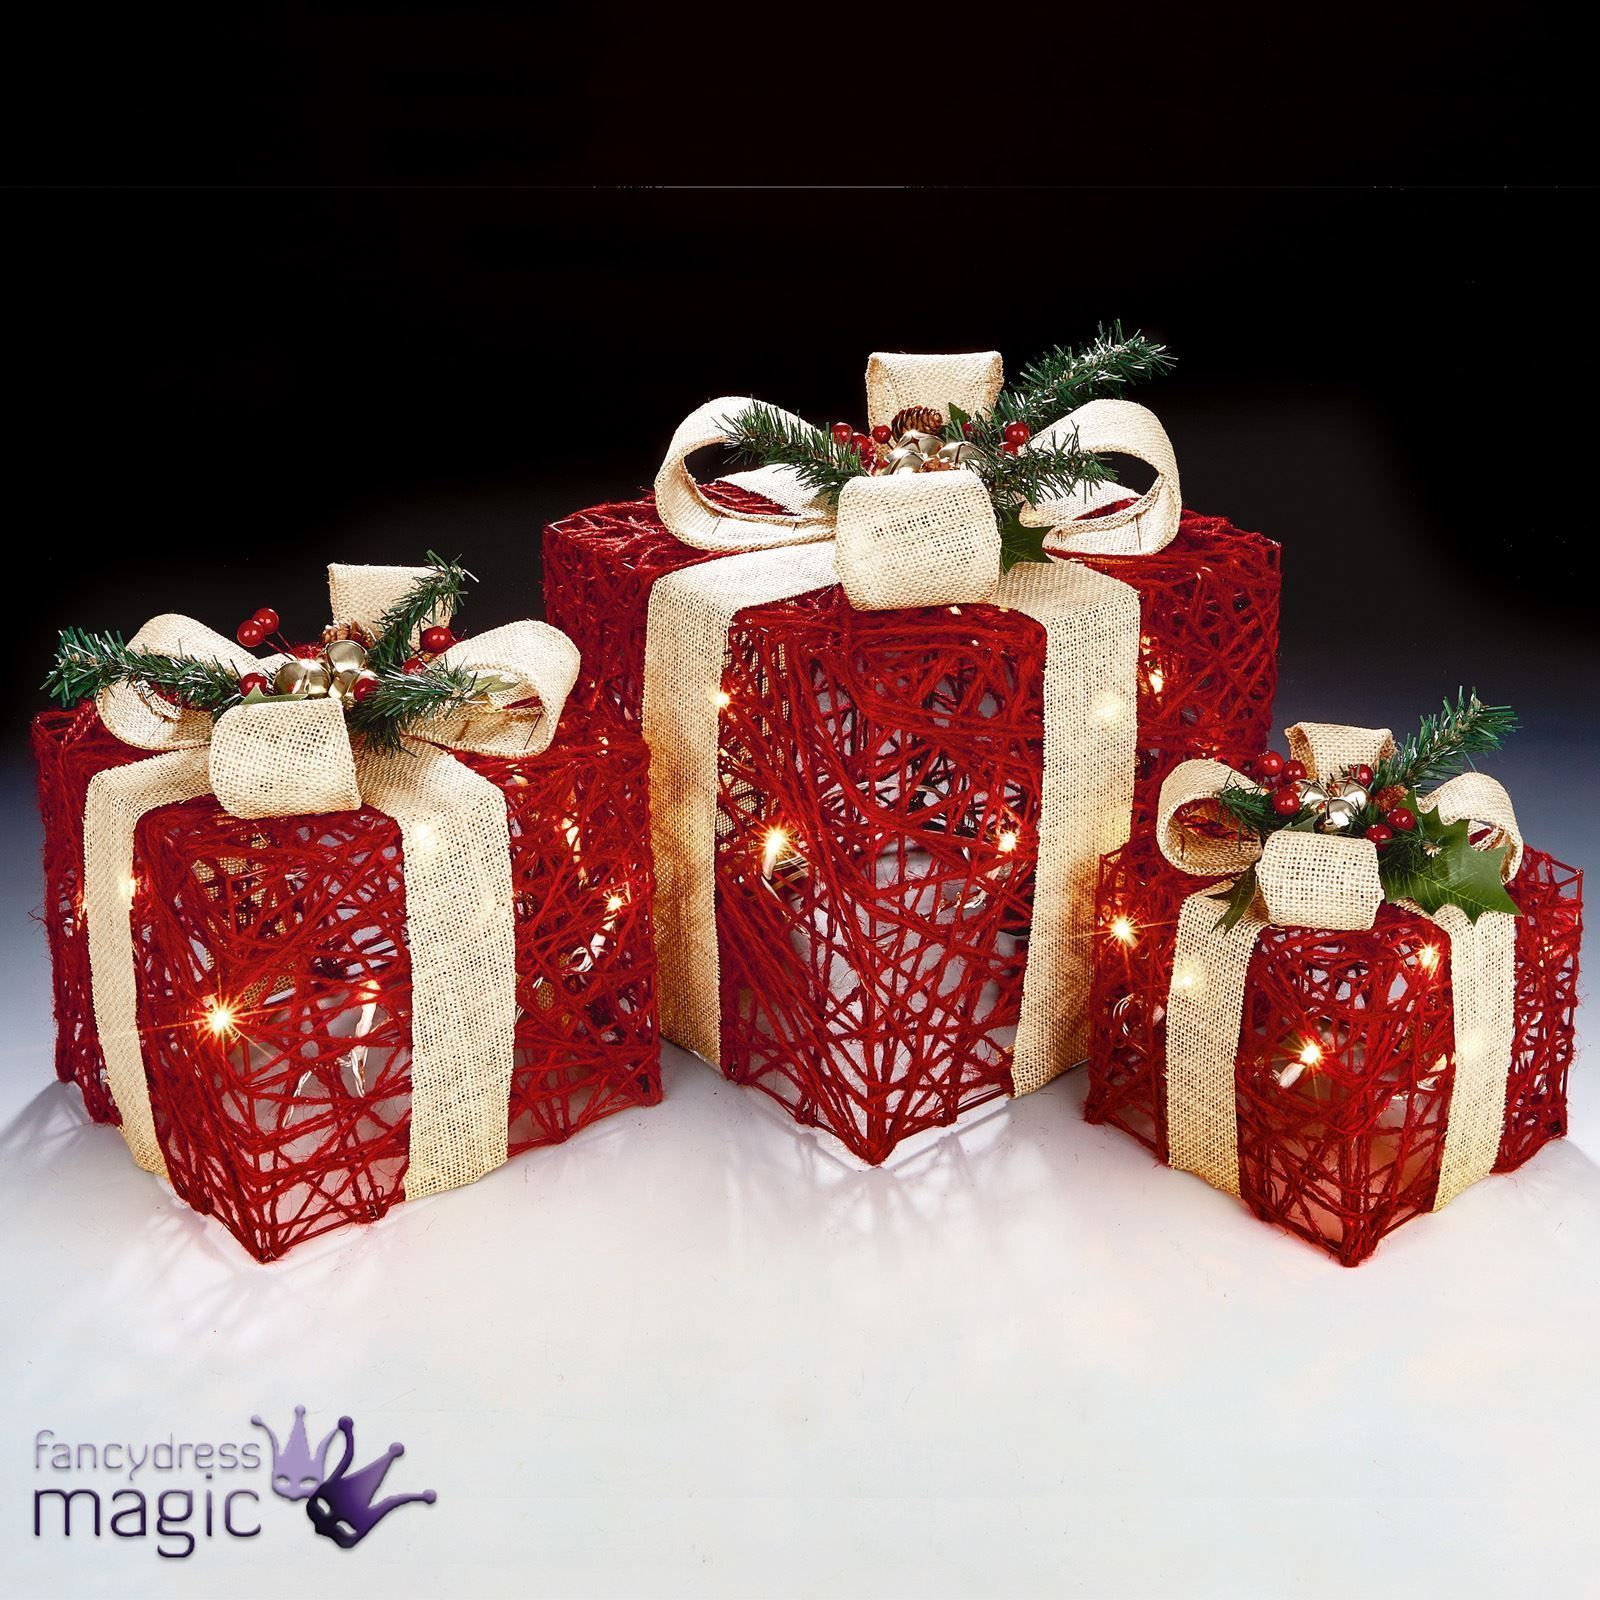 Light Up Parcels Christmas Decorations Argos: Set Of 3 Red Cream Christmas Xmas Presents Gifts Parcels